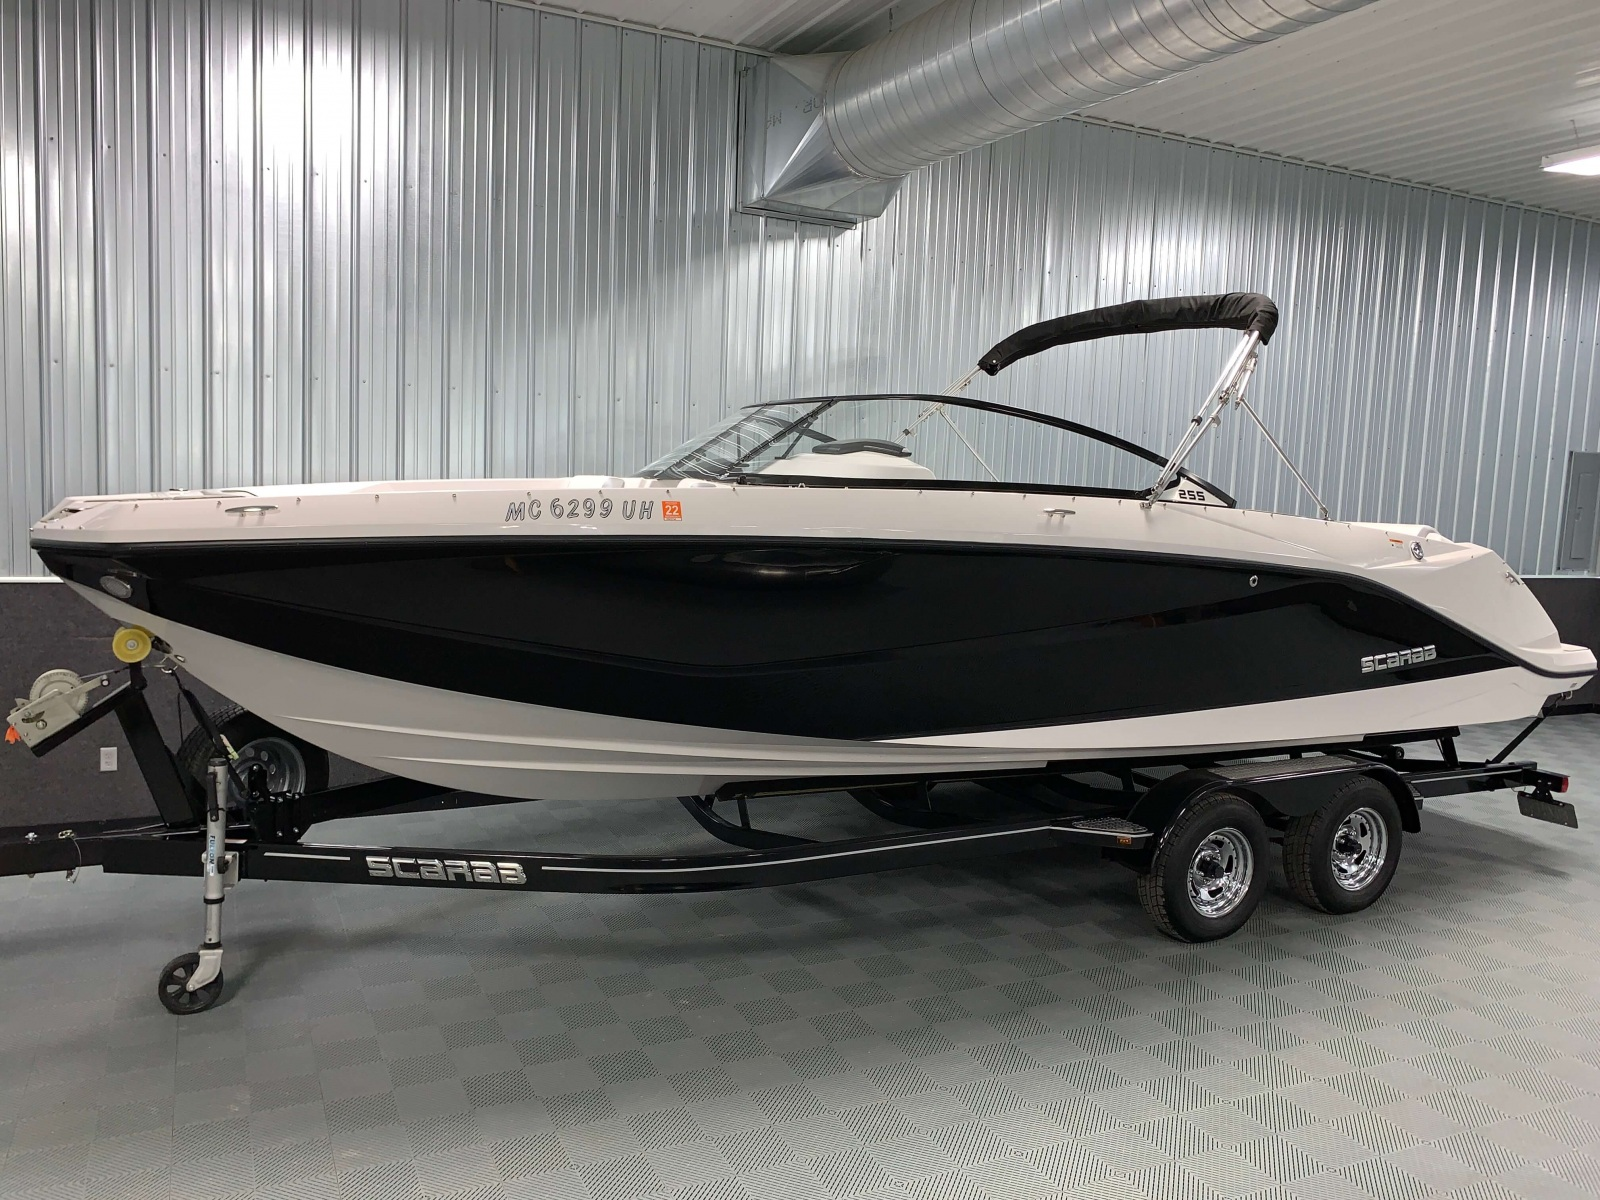 Jet Black Exterior Color of a 2018 Scarab Jet 255 G Jet Boat